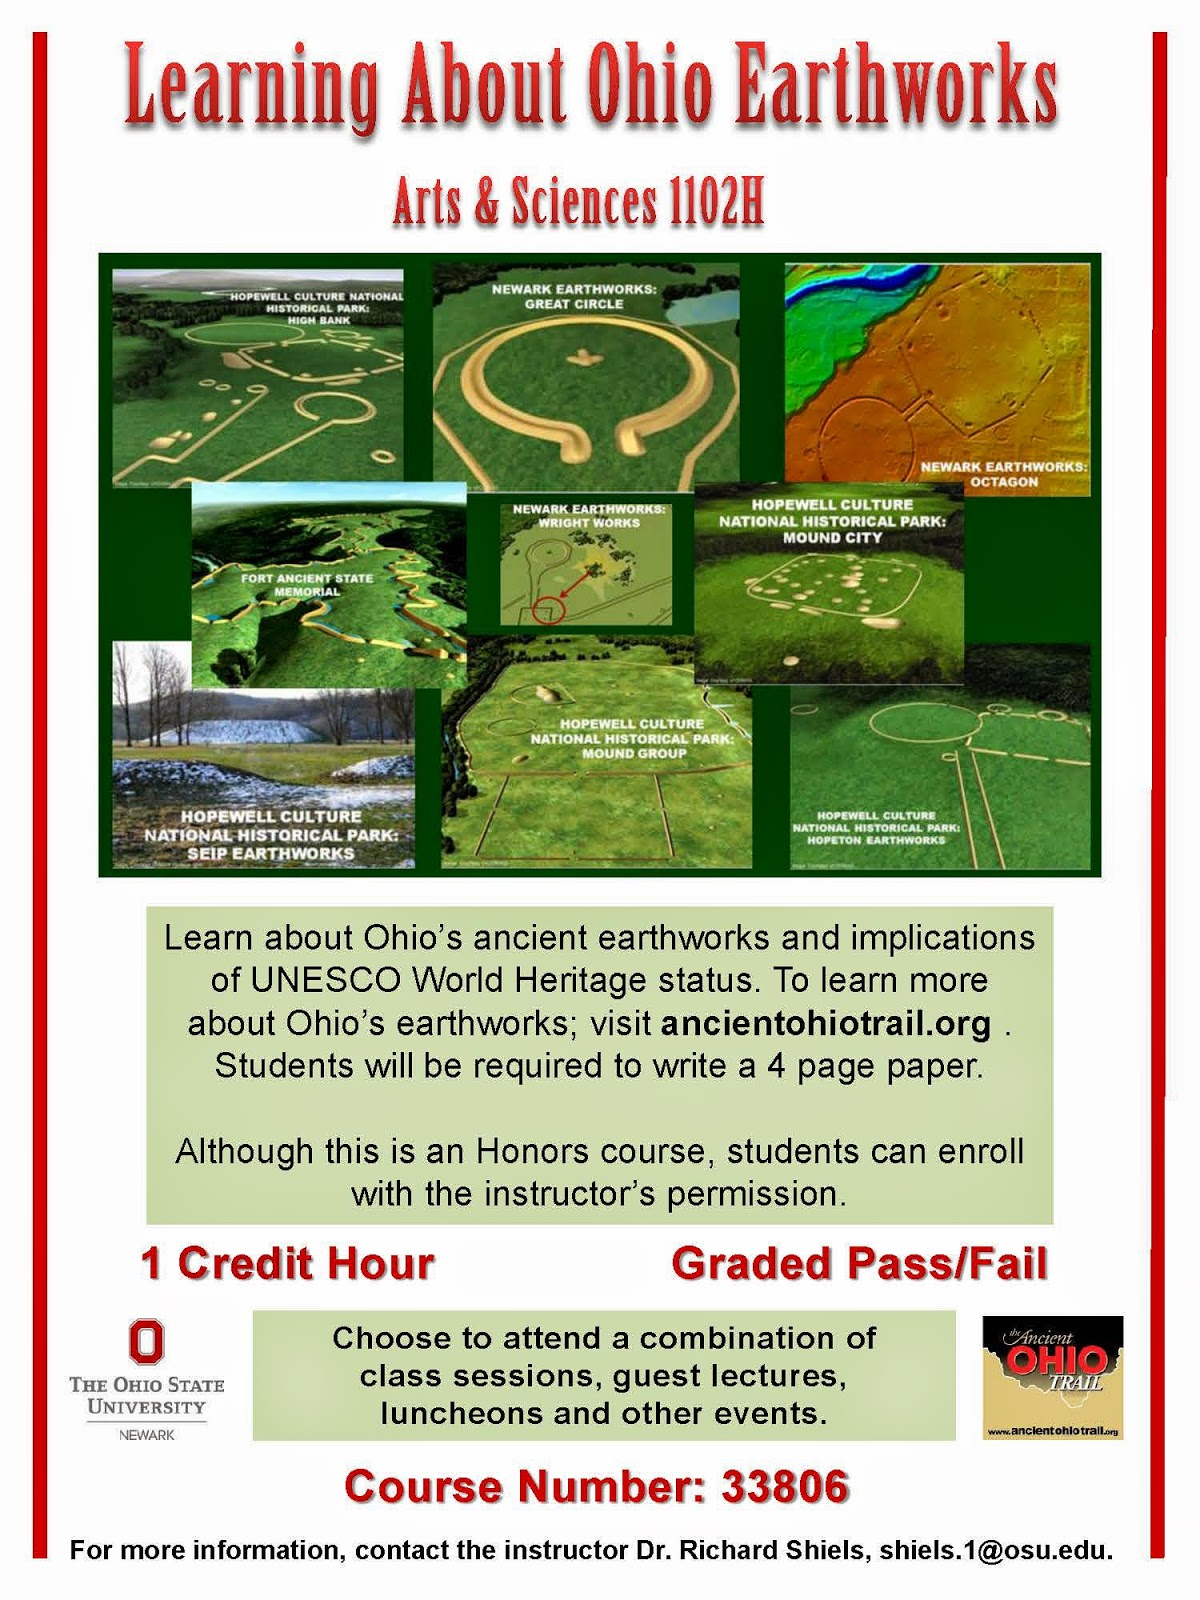 Learning About Ohio Earthworks PDF